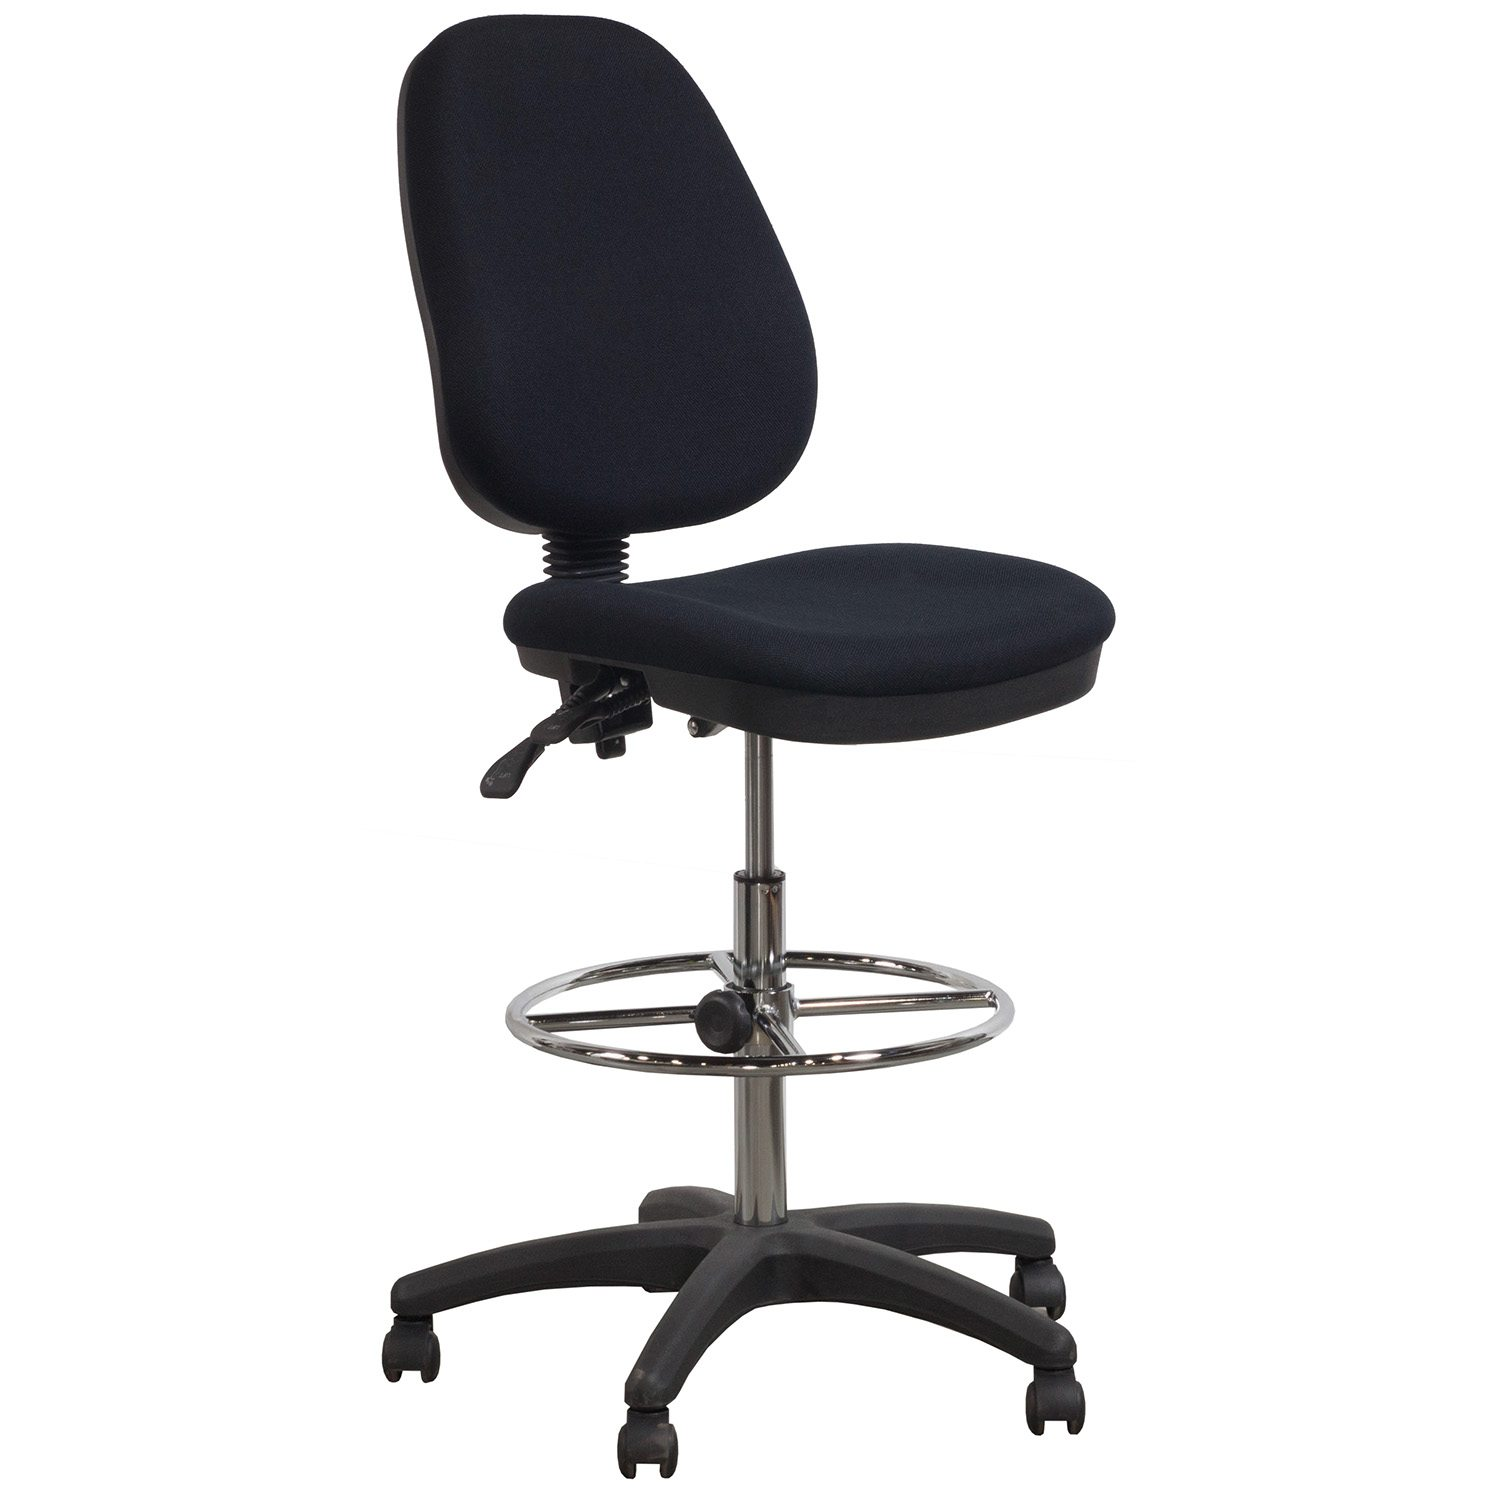 chair stool black how much fabric do i need to reupholster a flash furniture used armless ergonomic drafting